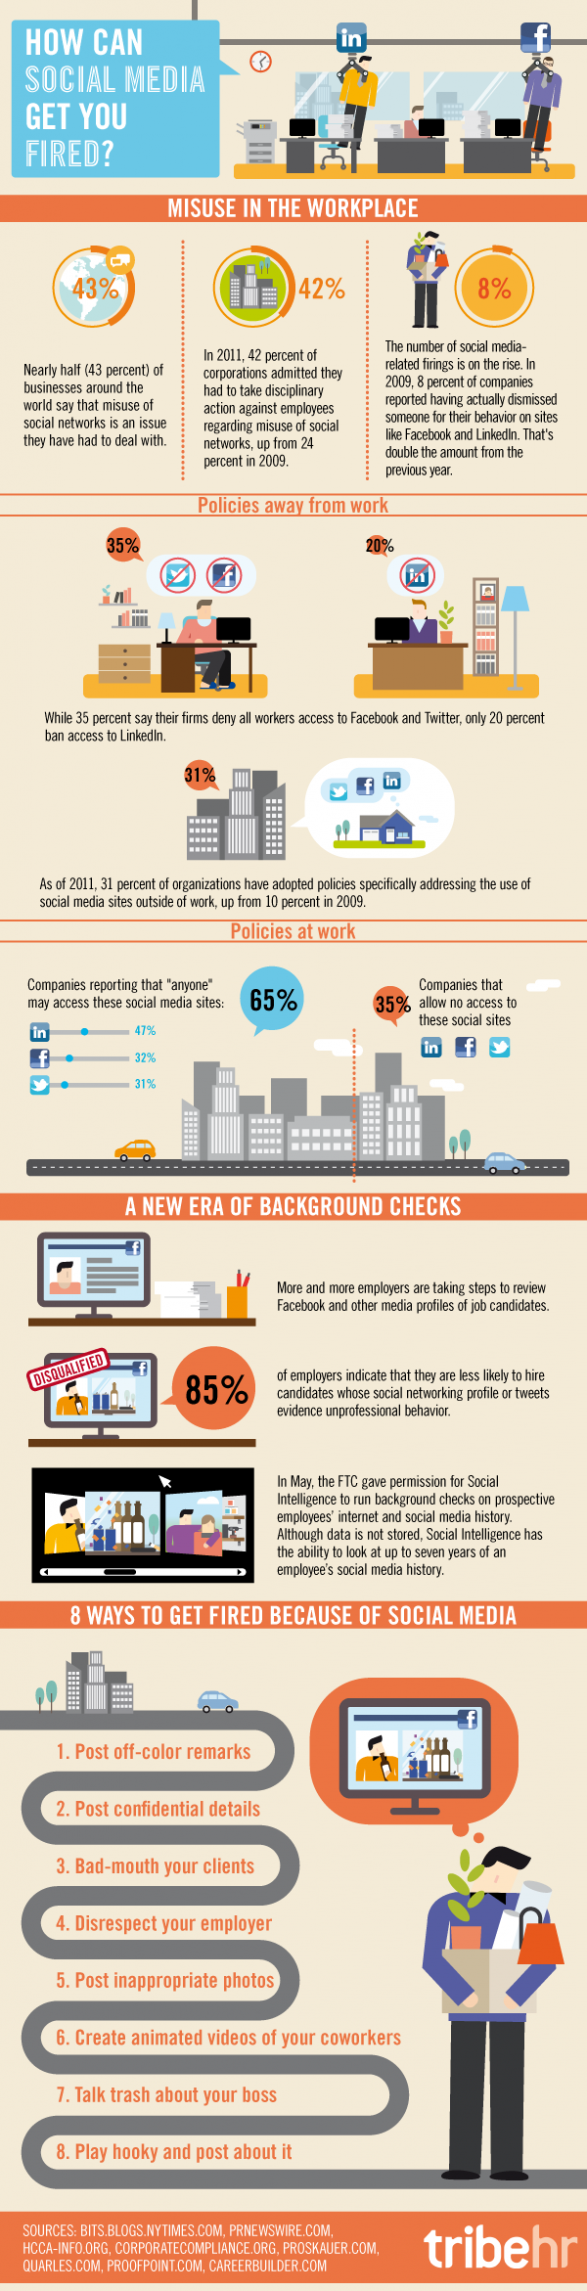 How-Can-Social-Media-Get-You-Fired-infographic